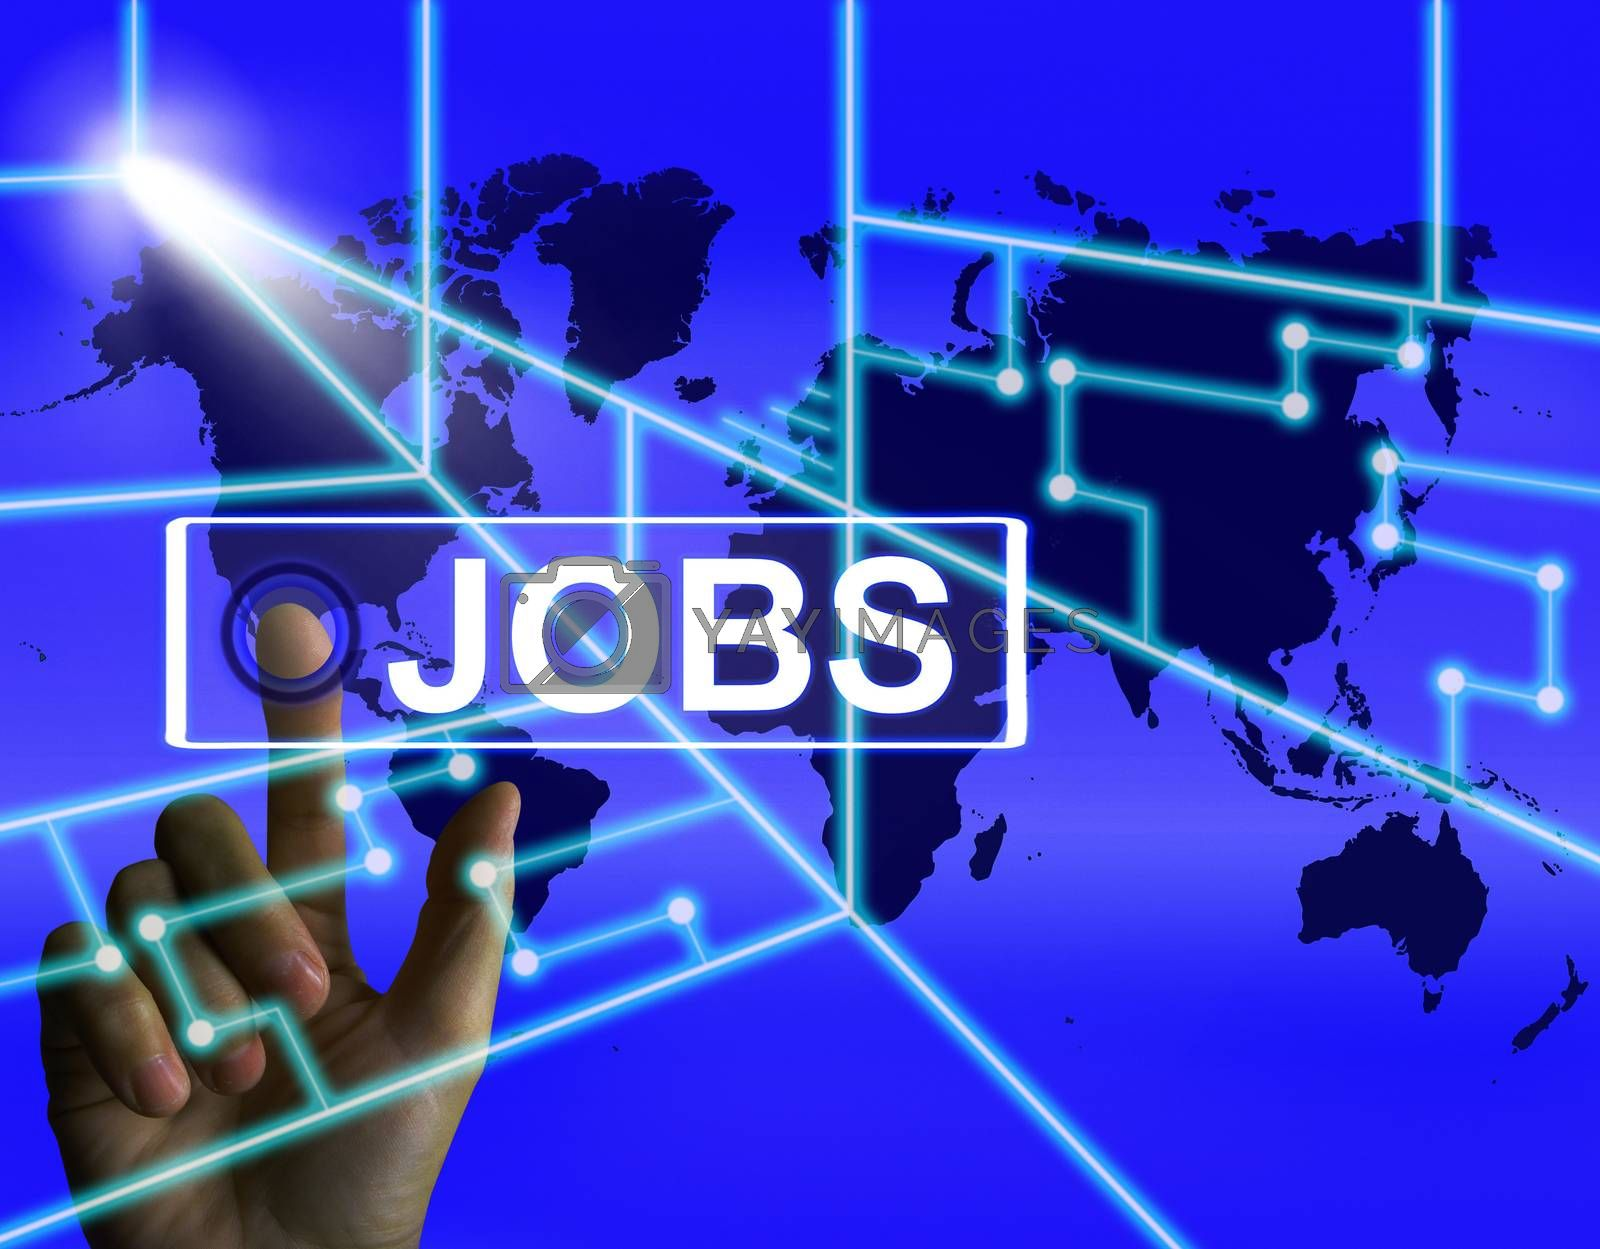 Jobs Screen Represents Worldwide or Internet Career Search by stuartmiles